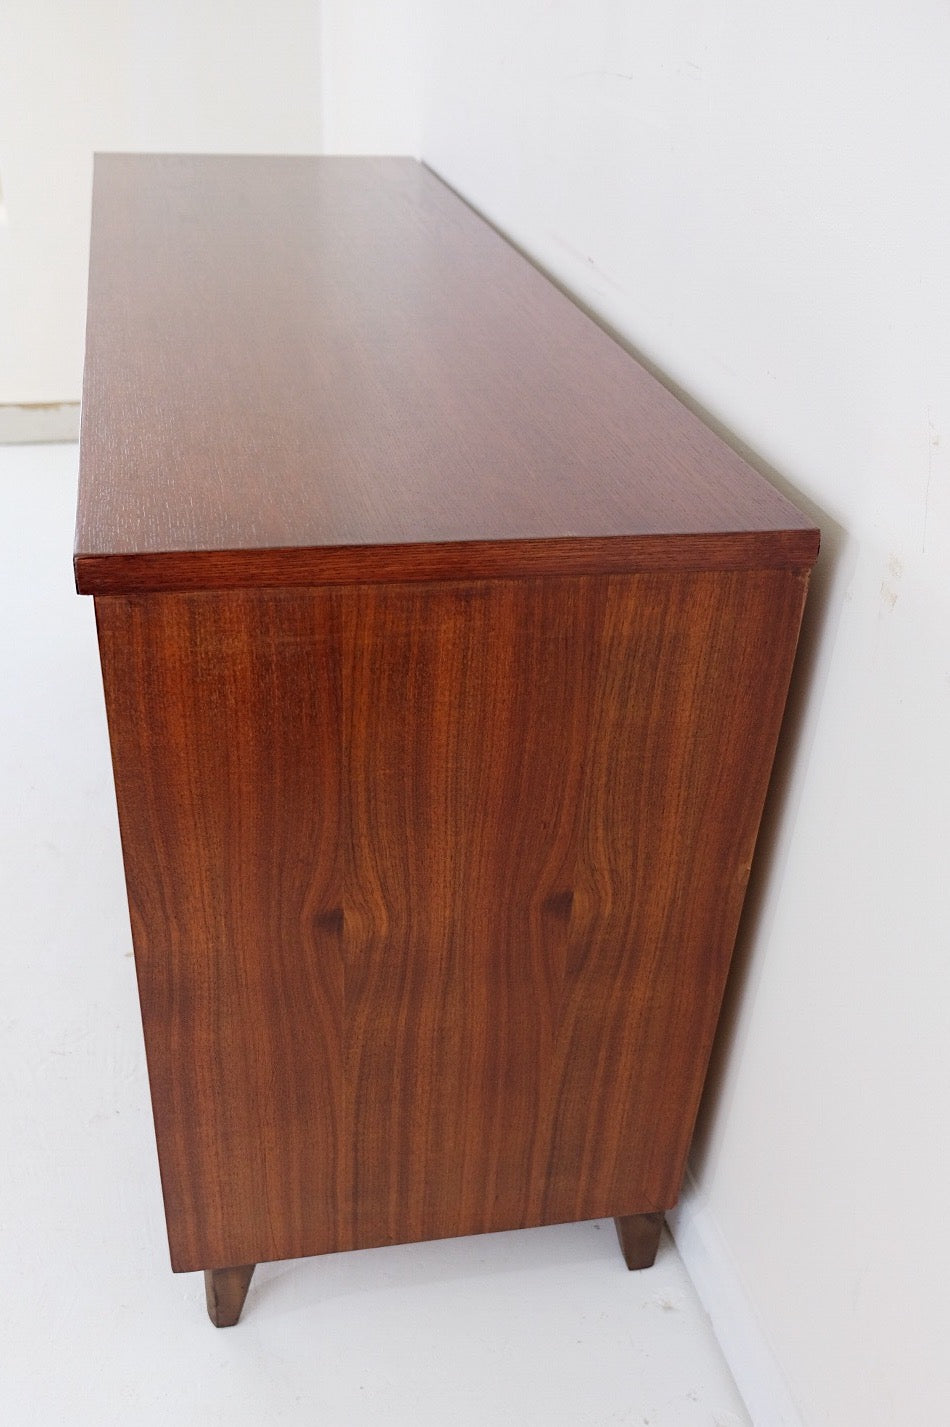 Stanley Restored Oak and Walnut Mid Century Modern Low Dresser